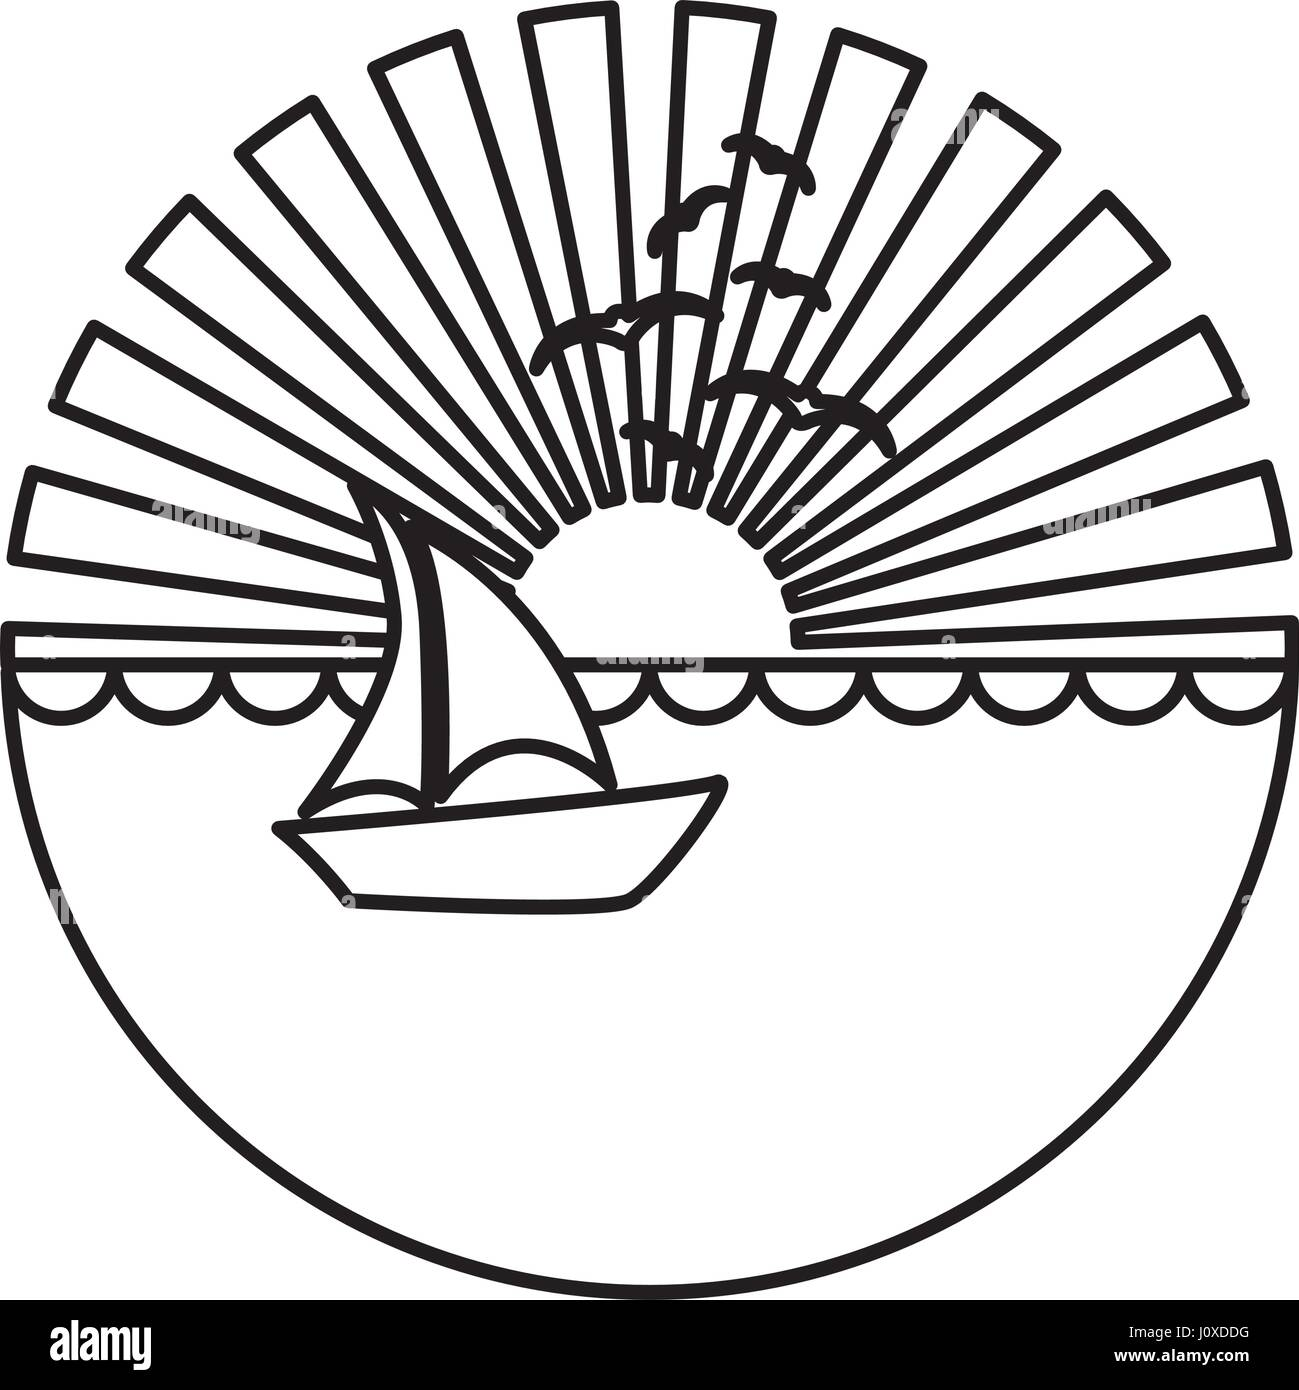 silhouette circular background sunset in the ocean with boat over waves - Stock Vector